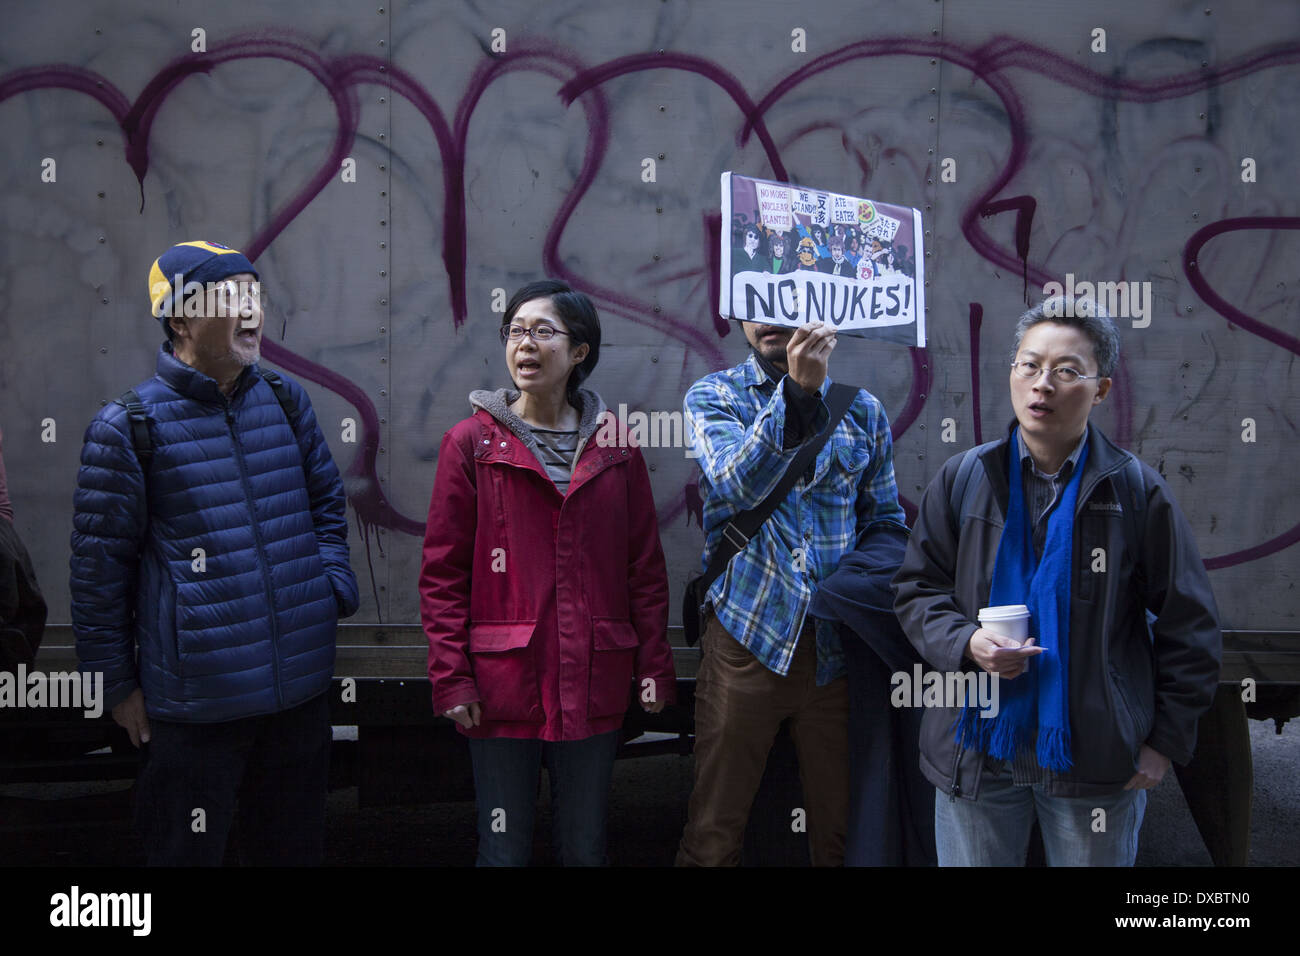 Outside the Japanese consulate in NYC antinuclear demonstrators say shot all nuclear plants down in Japan. - Stock Image